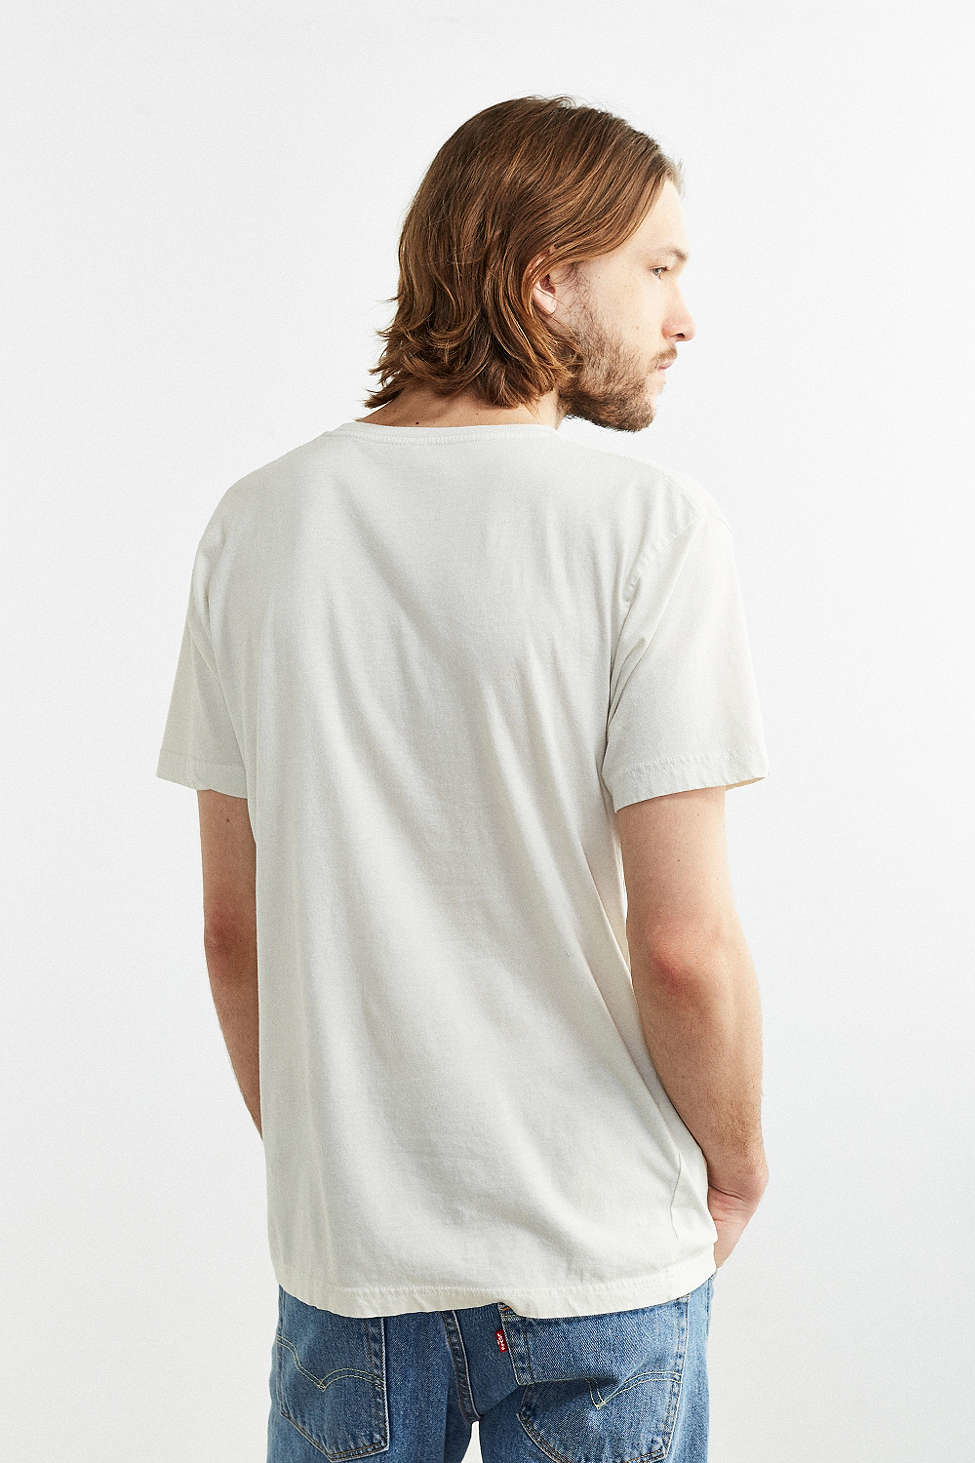 outfitters just dude it in white for lyst